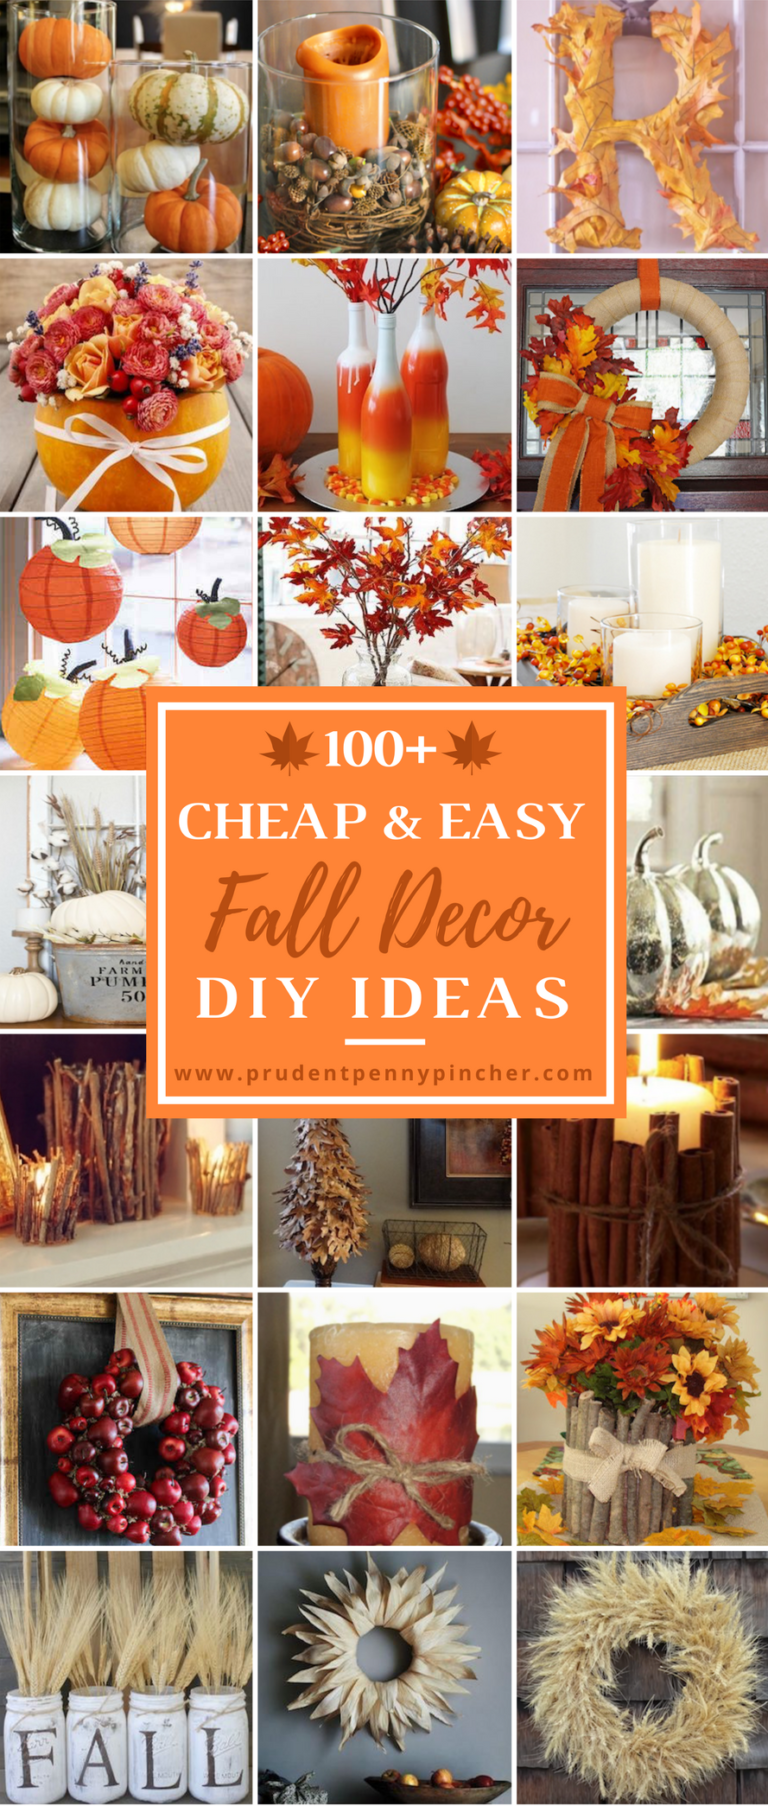 100 Cheap and Easy Fall Decor DIY Ideas #diyfalldecor